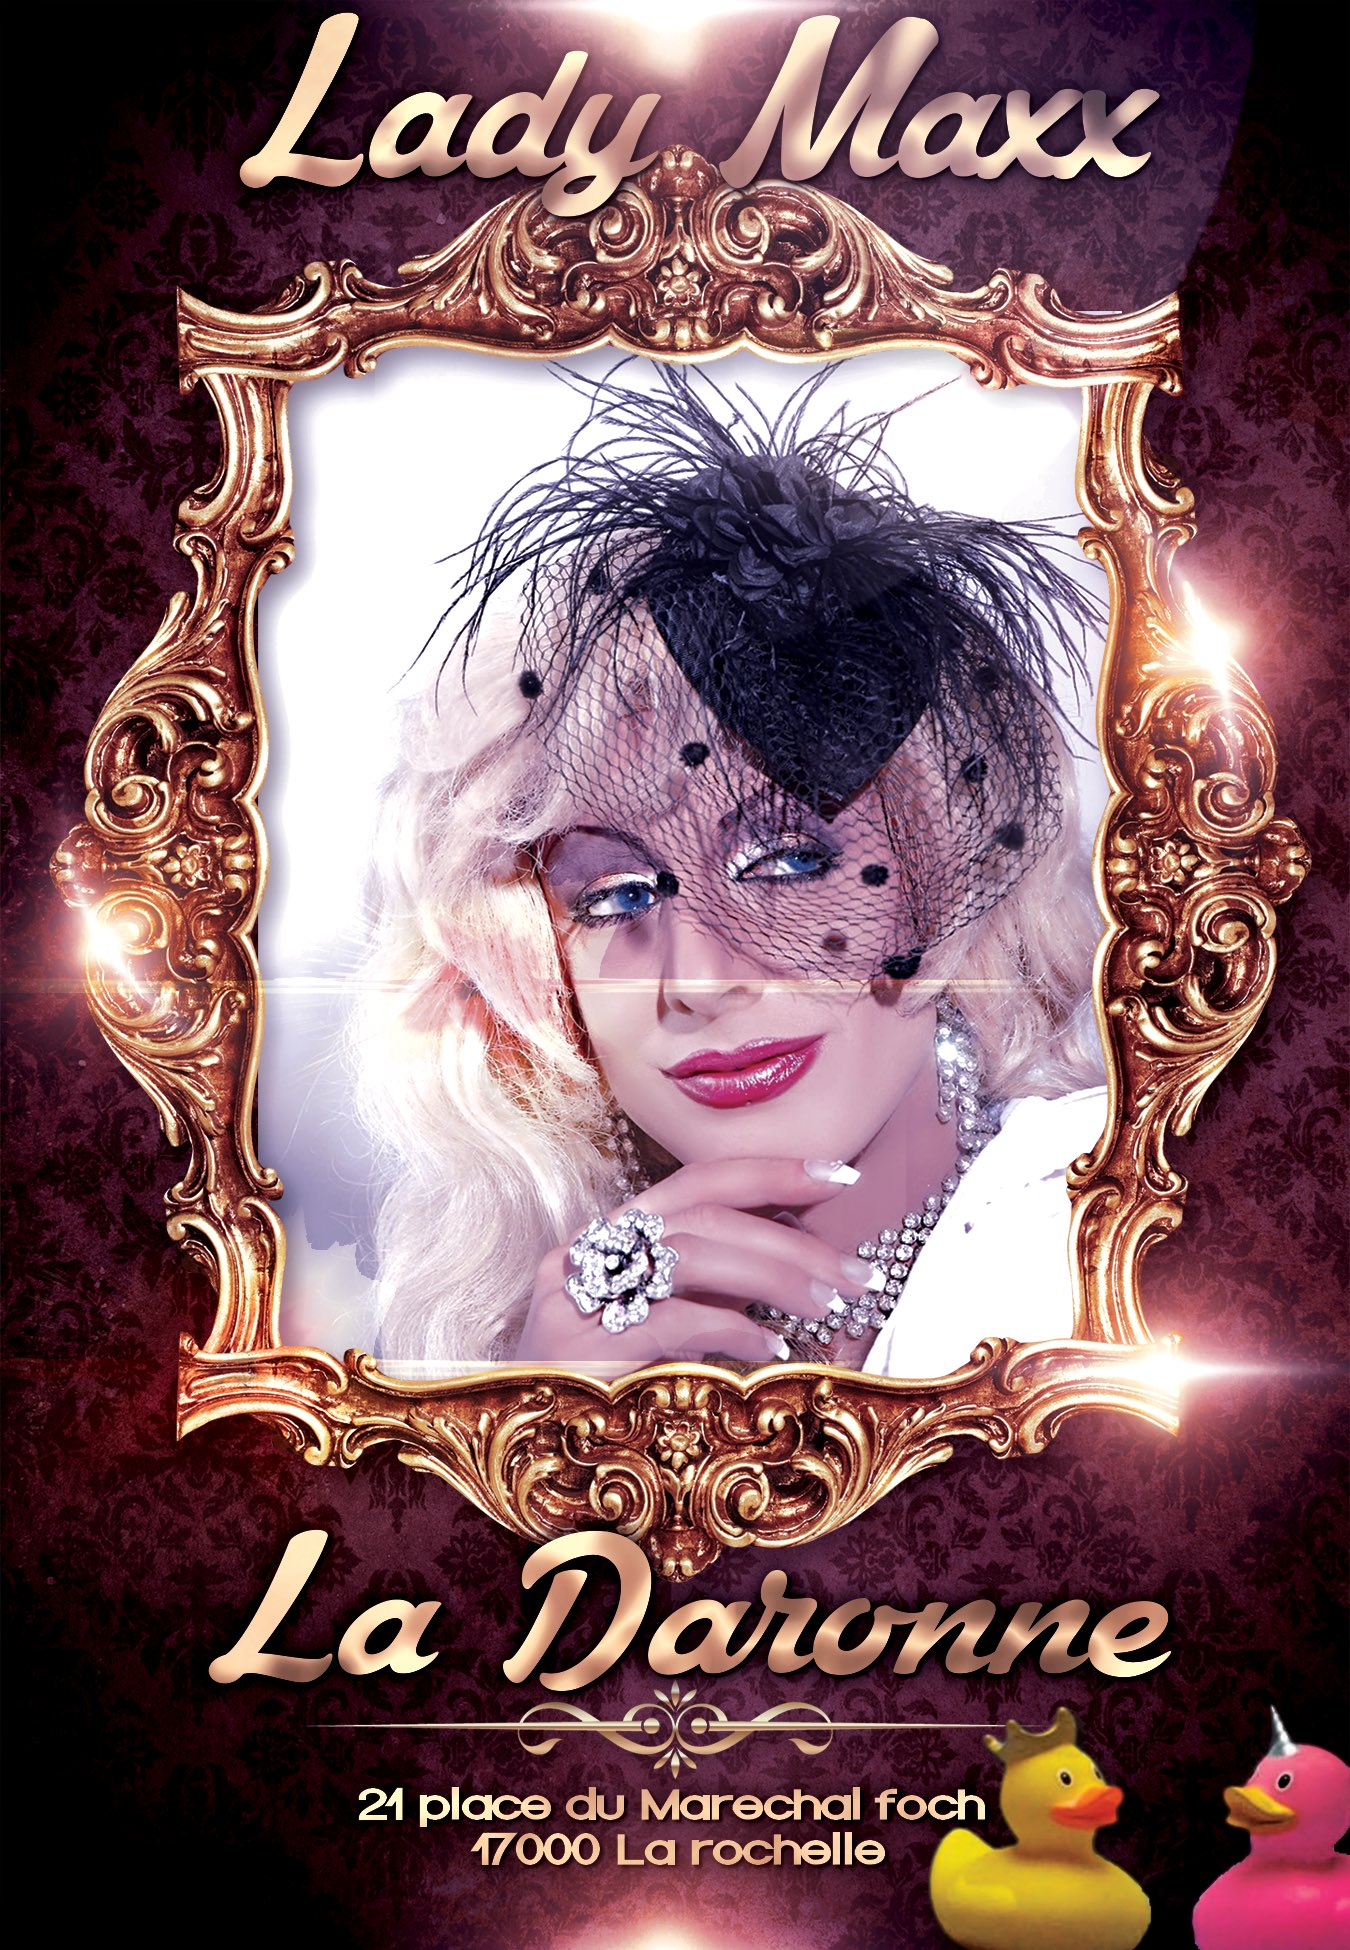 Rdv le 2/3 octobre @LaRochelle_OT  #cabaret #spectacle #ladaronne https://t.co/KhqmZGz5rs